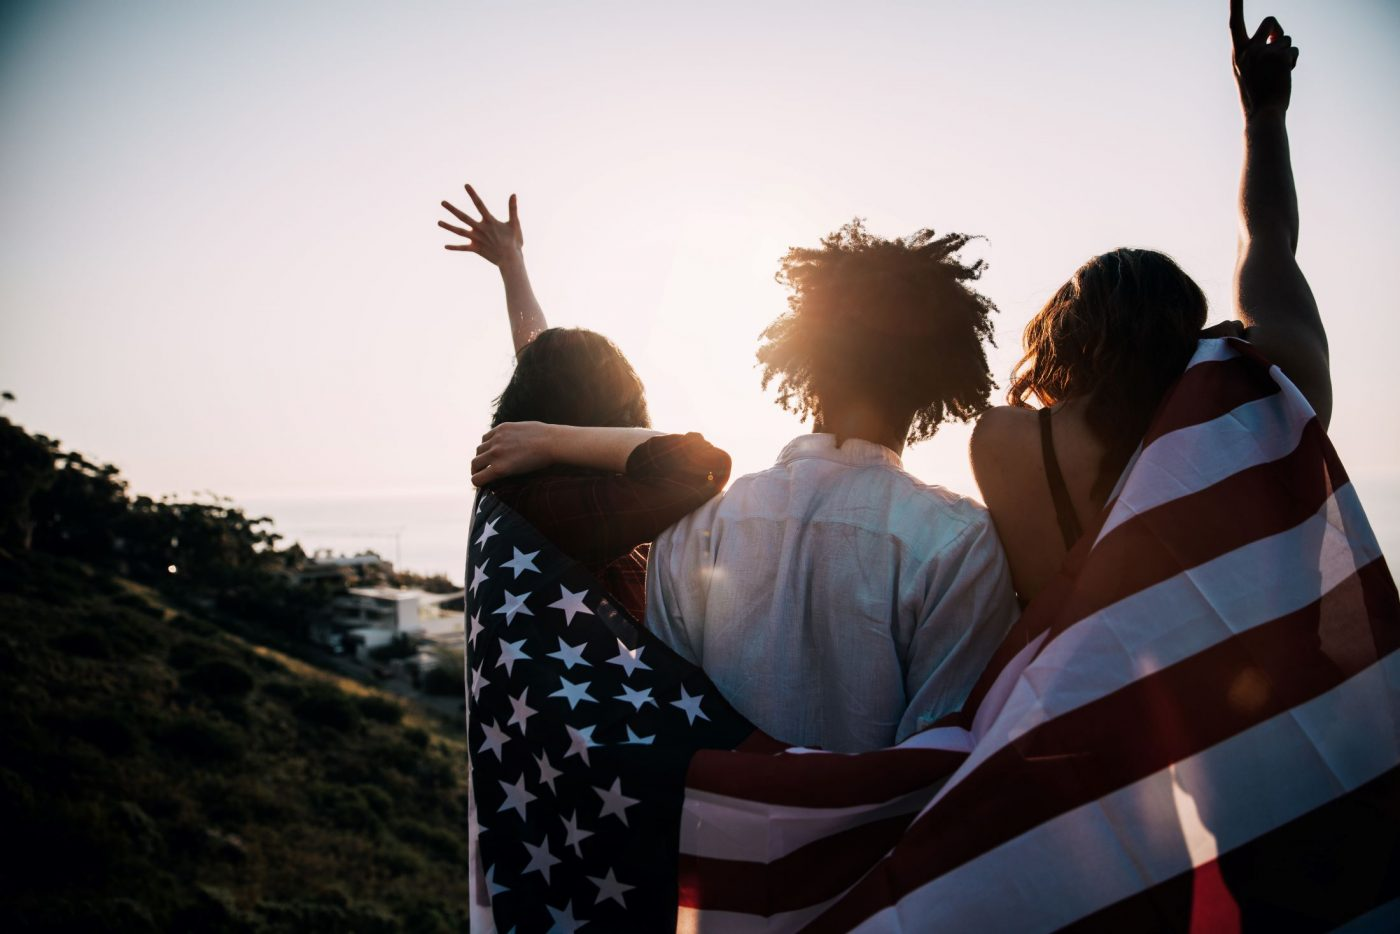 group of friends looking at the sunset with a the flag wrapped around them and arms in the air celebrating